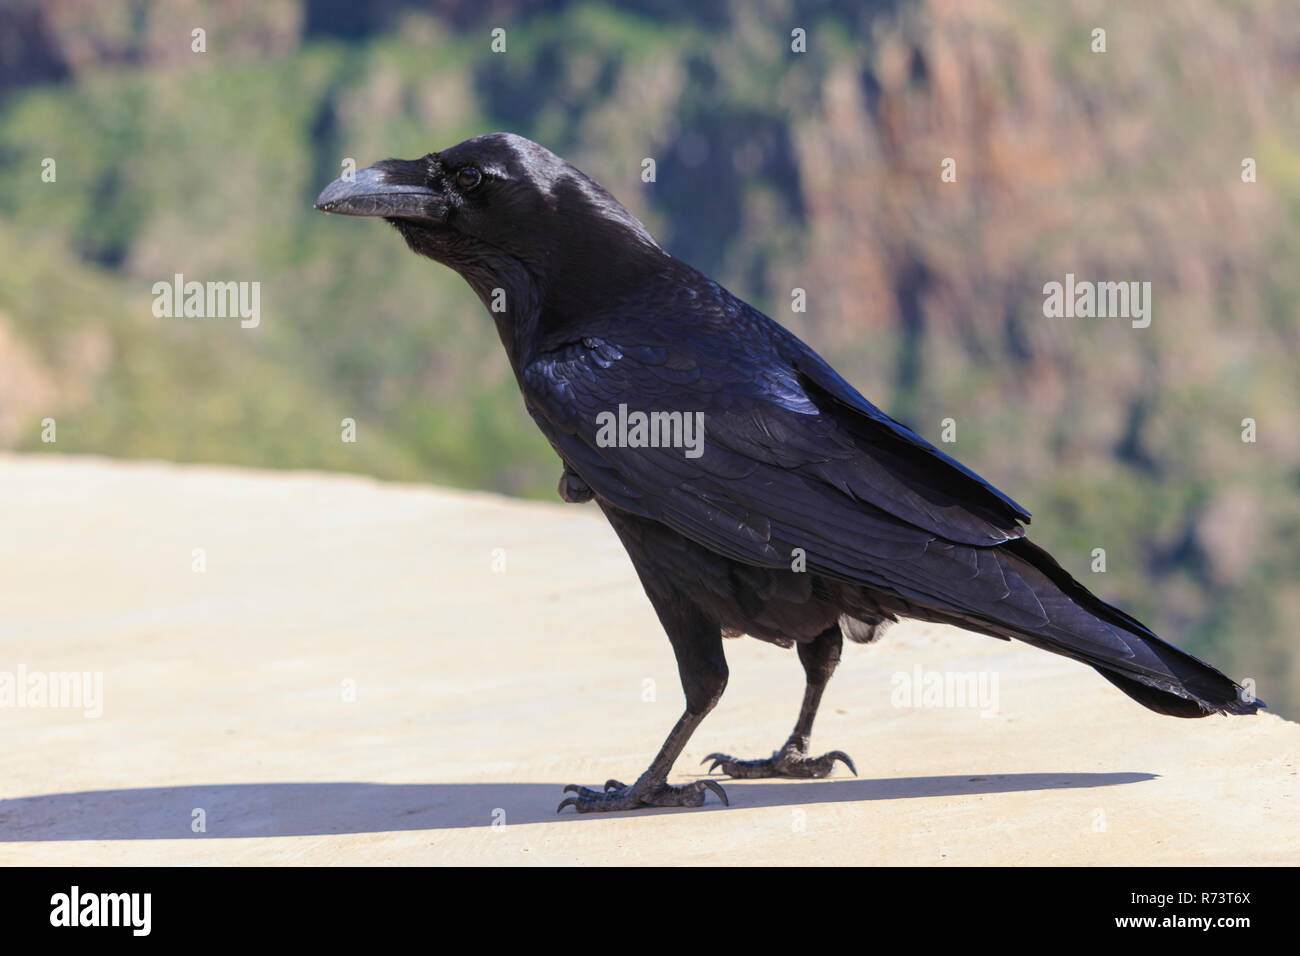 Common raven Corvus corax view from side - Stock Image